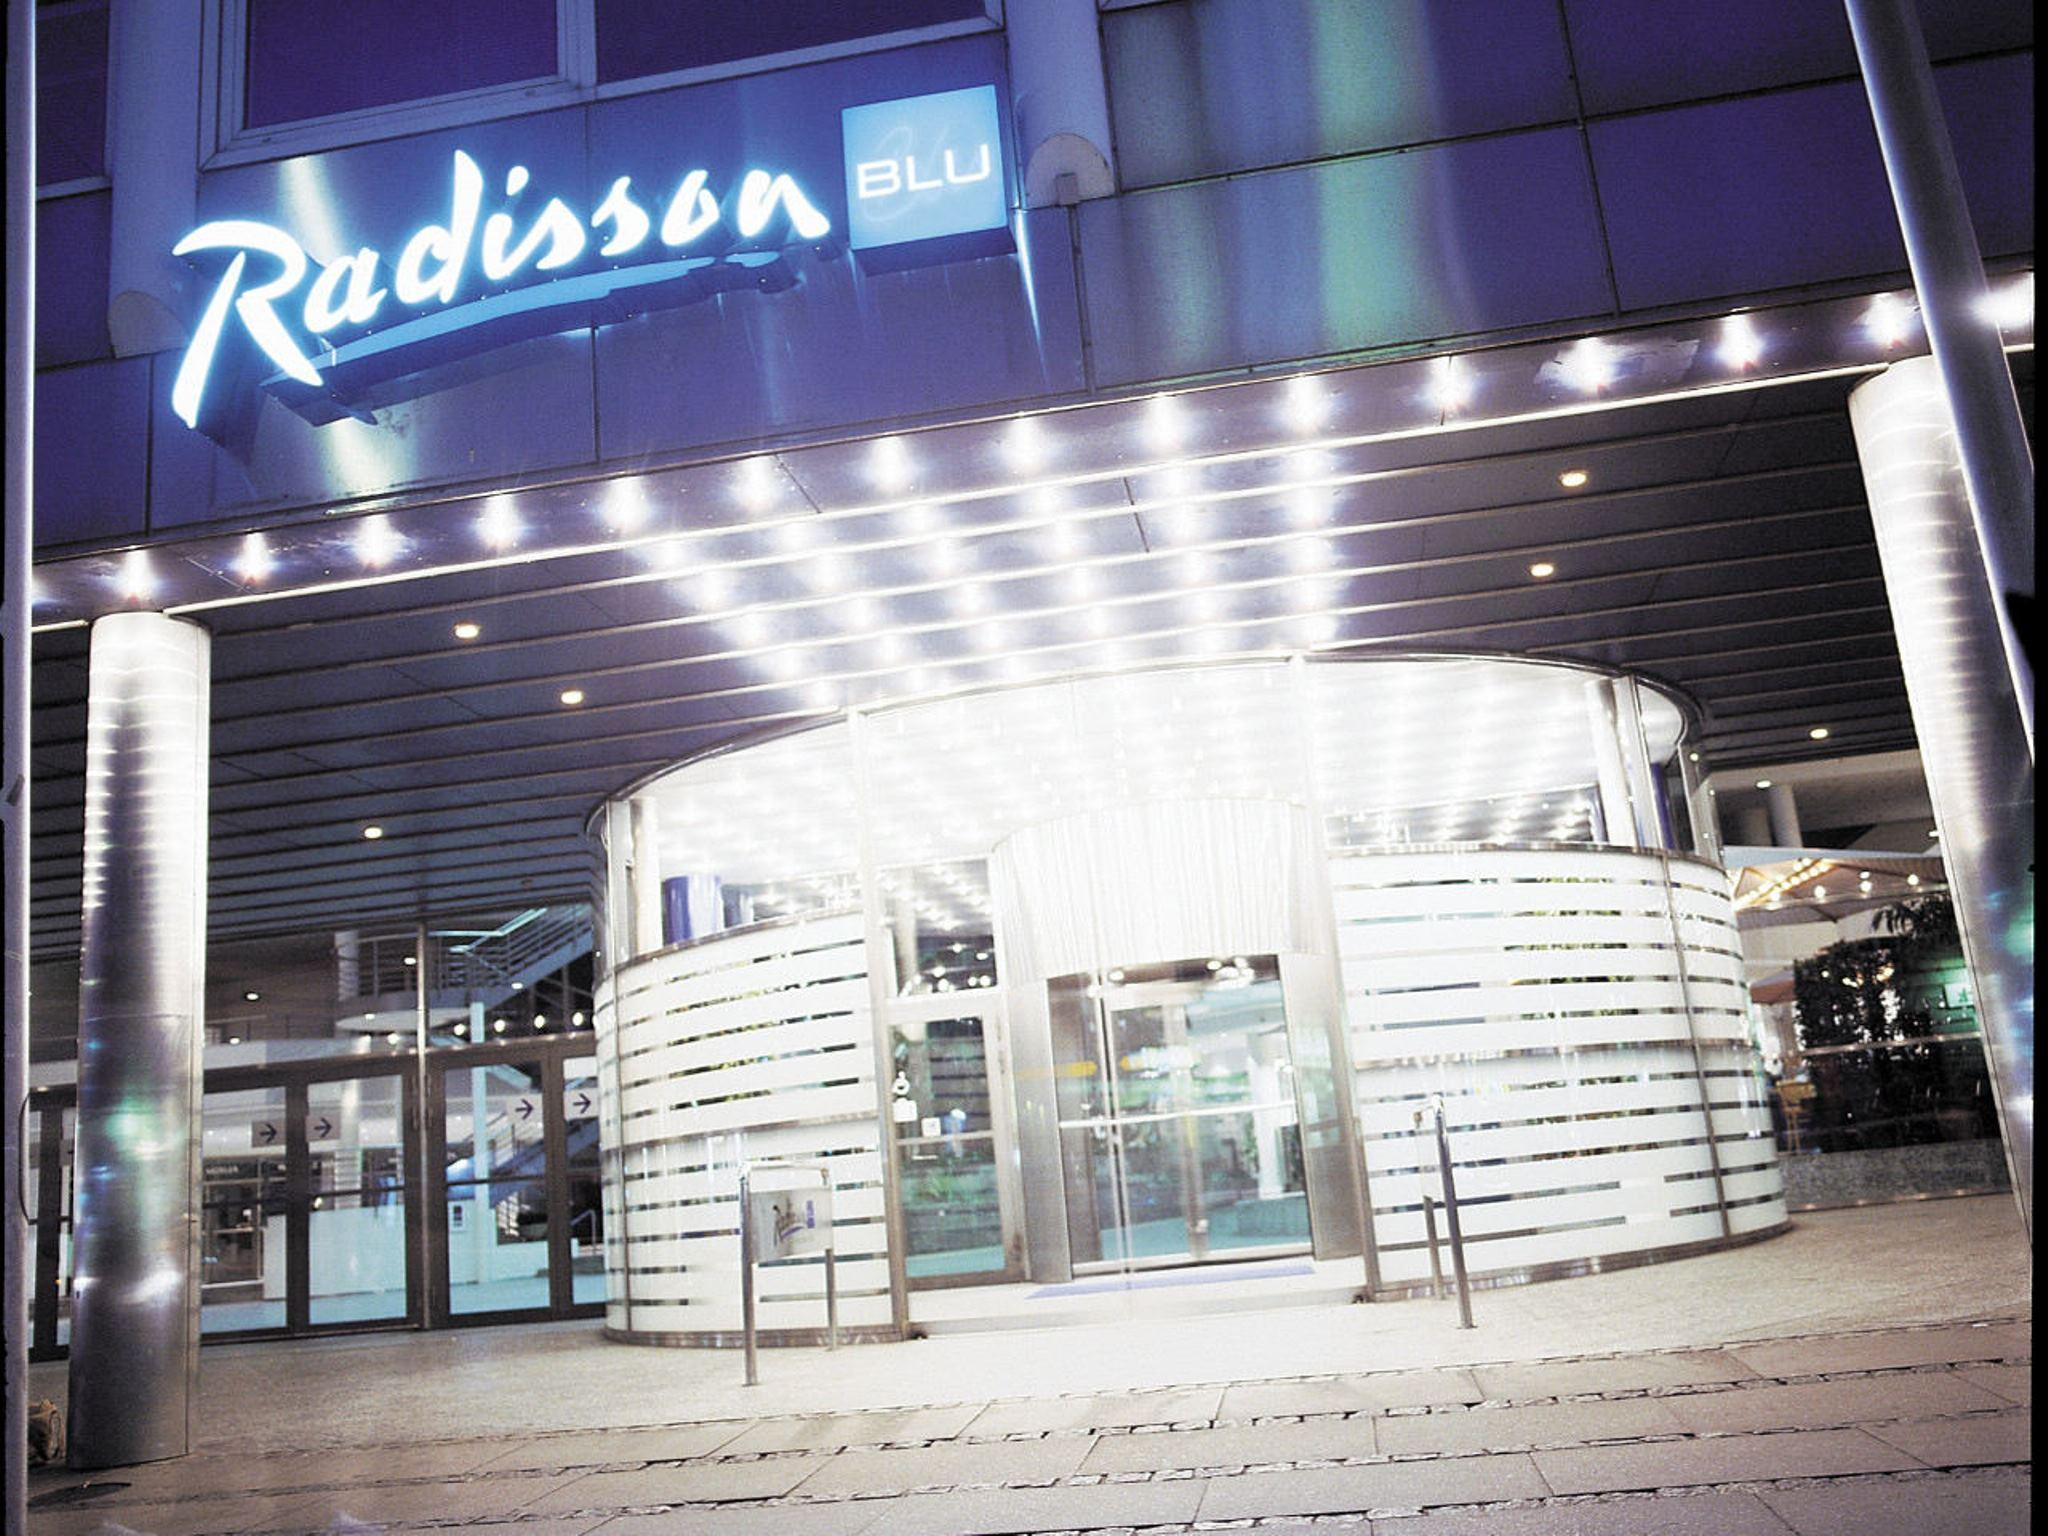 Radisson Blu Falconer Hotel And Conference Center, Frederiksberg